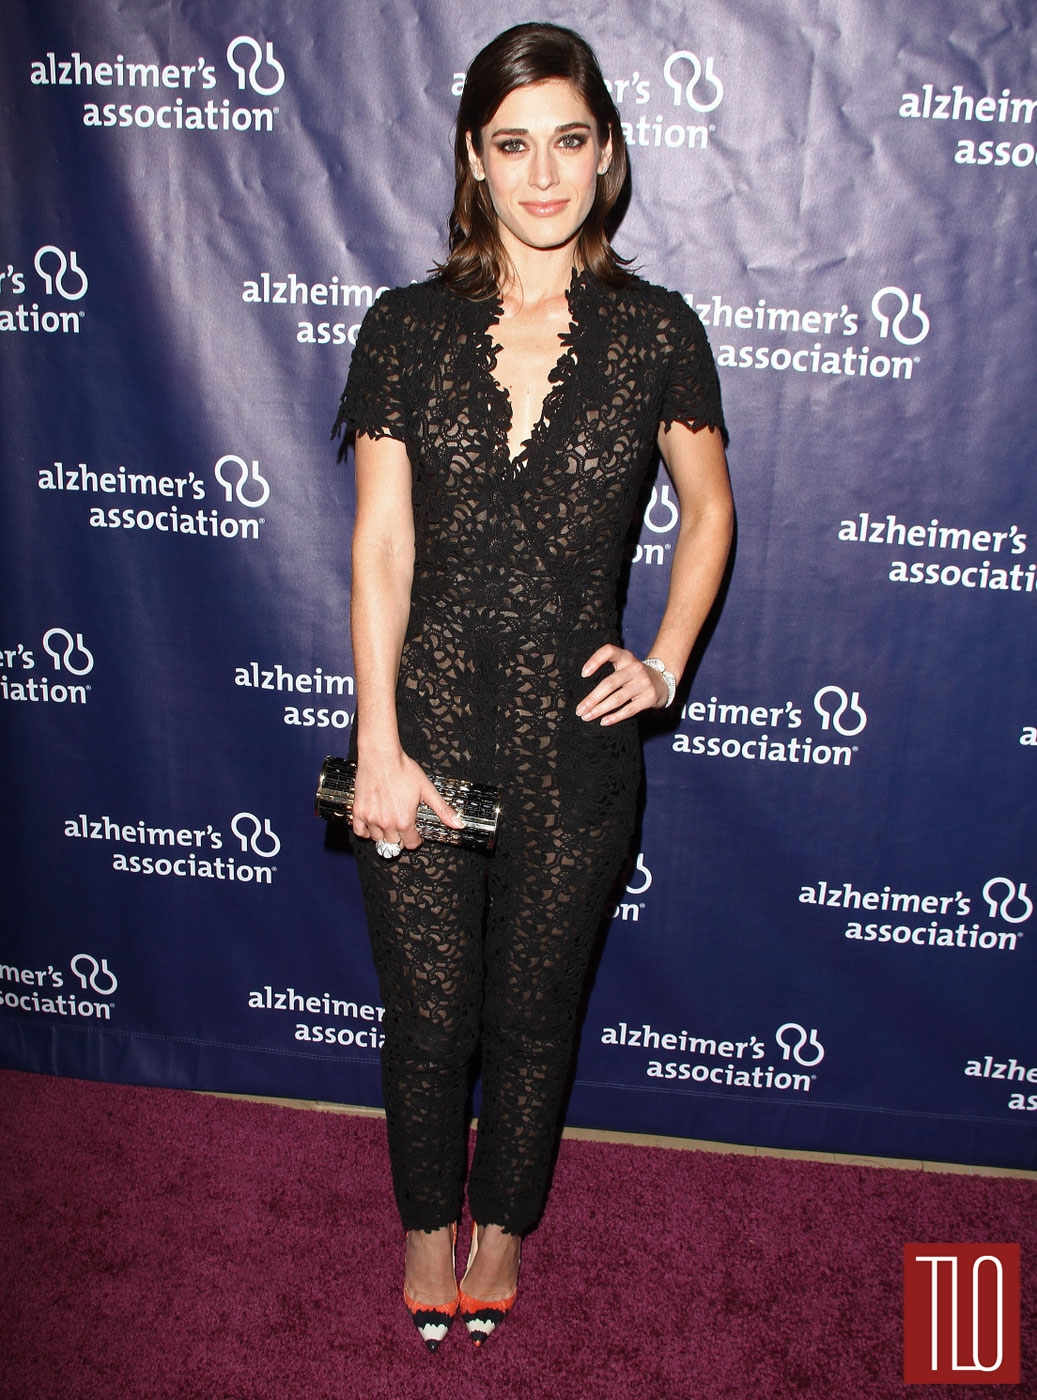 Lizzy-Caplan-Night-Sardis-Benefit-Houghton-Tom-LOrenzo-Site-TLO (1)